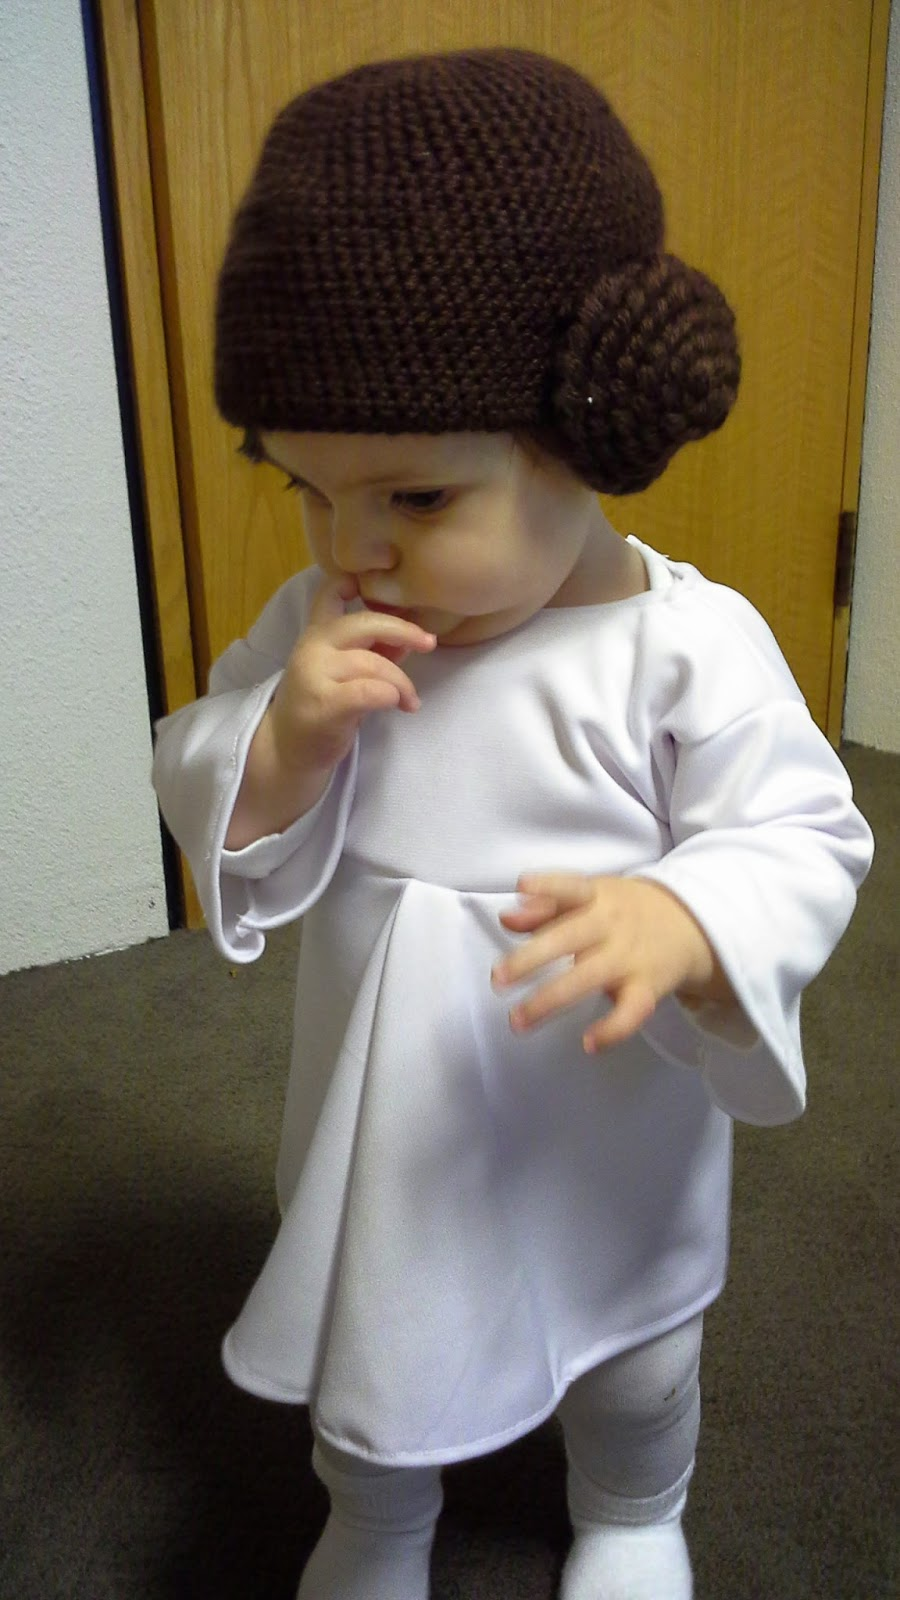 ... diy baby princess leia costume homemade ... & Princess Leia Costume Diy Child - Home Design